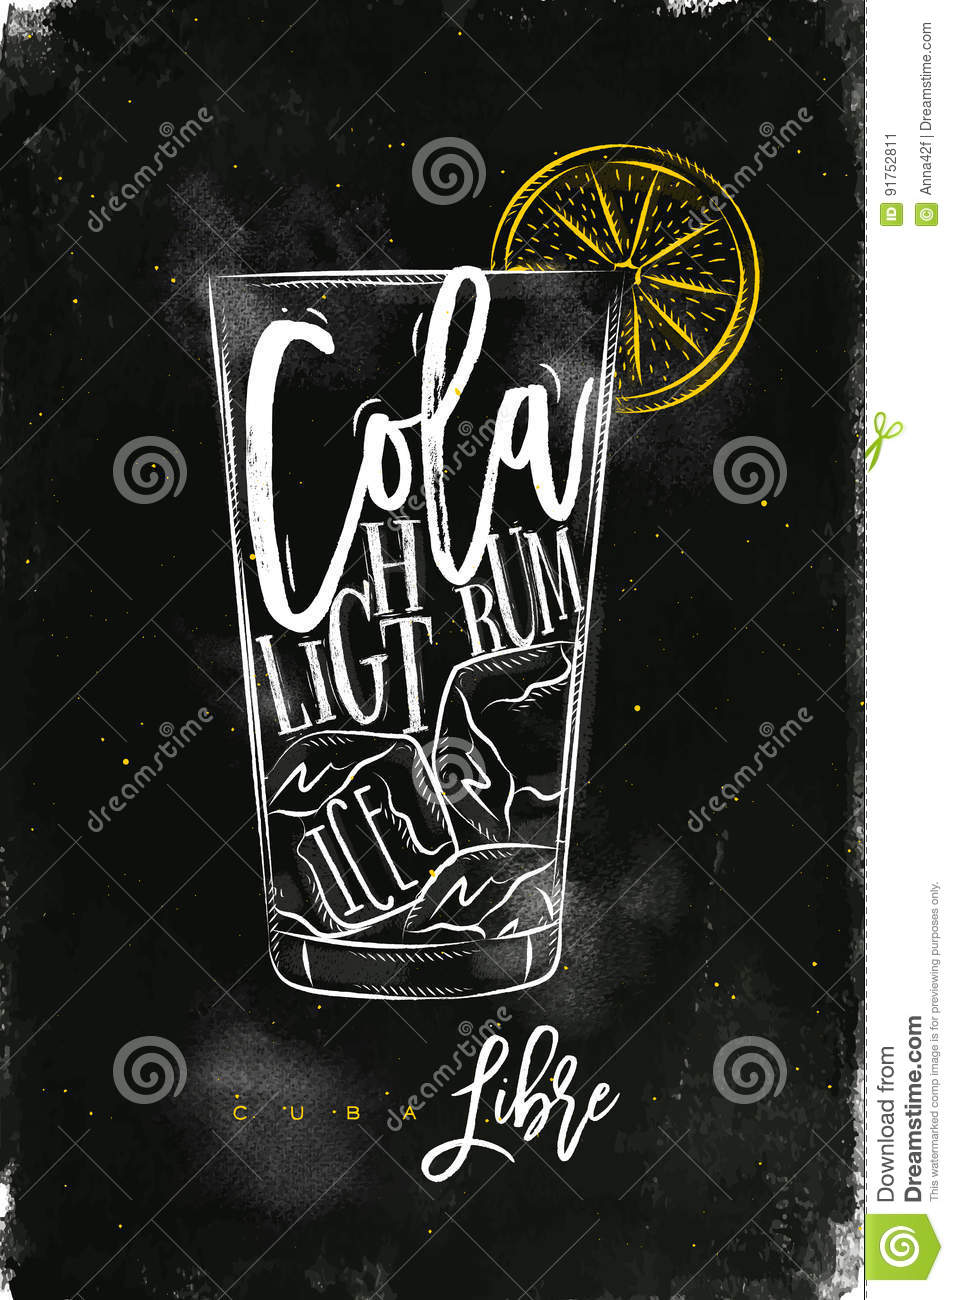 Cuba Libre Cocktail Chalk Color Stock Vector - Illustration of drink ...